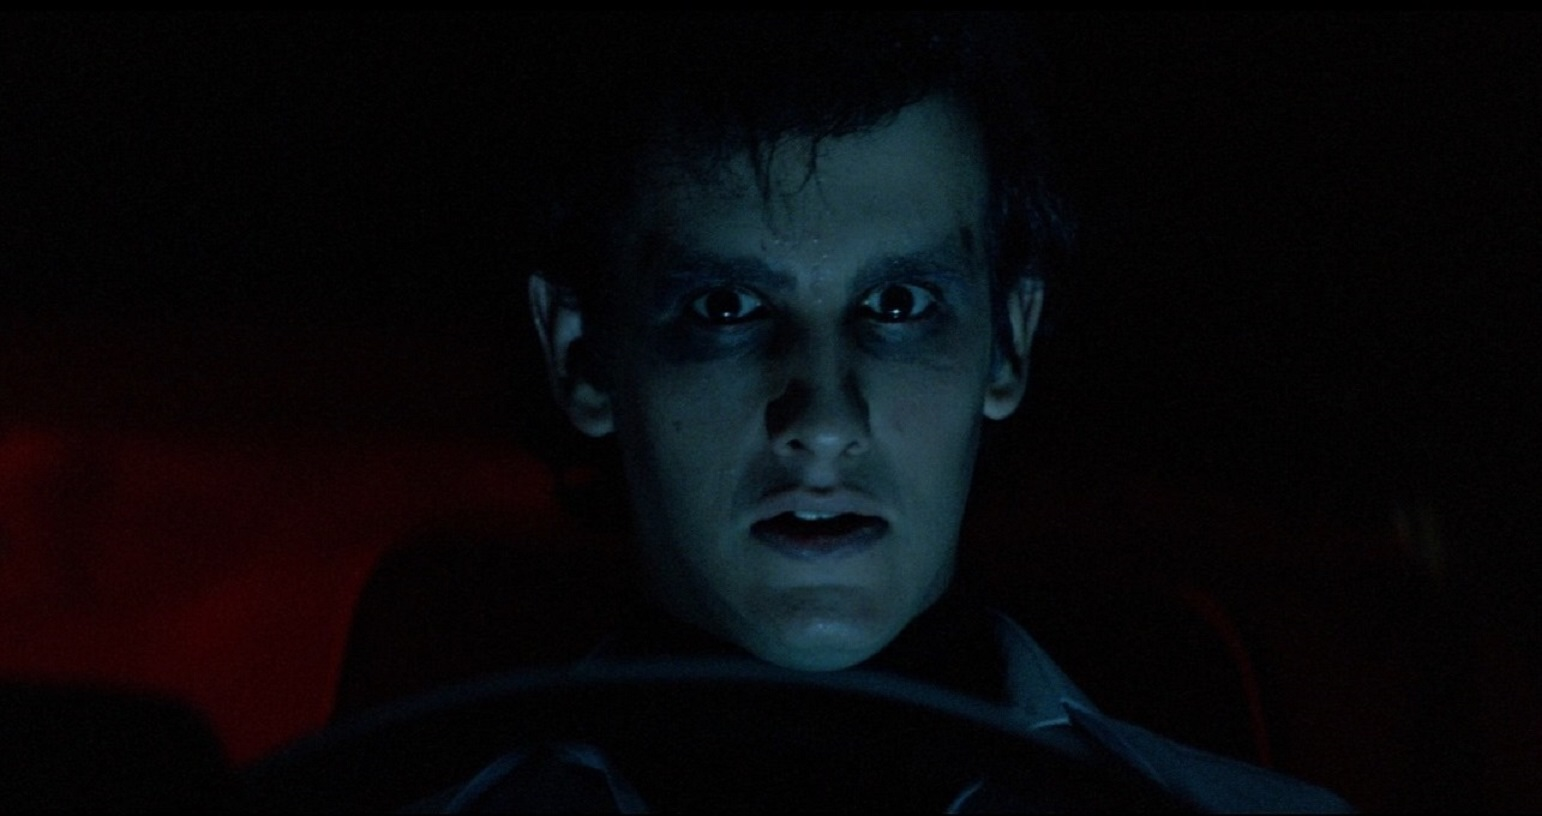 Keith Gordon as Arnie Cunningham in Christine (1983)